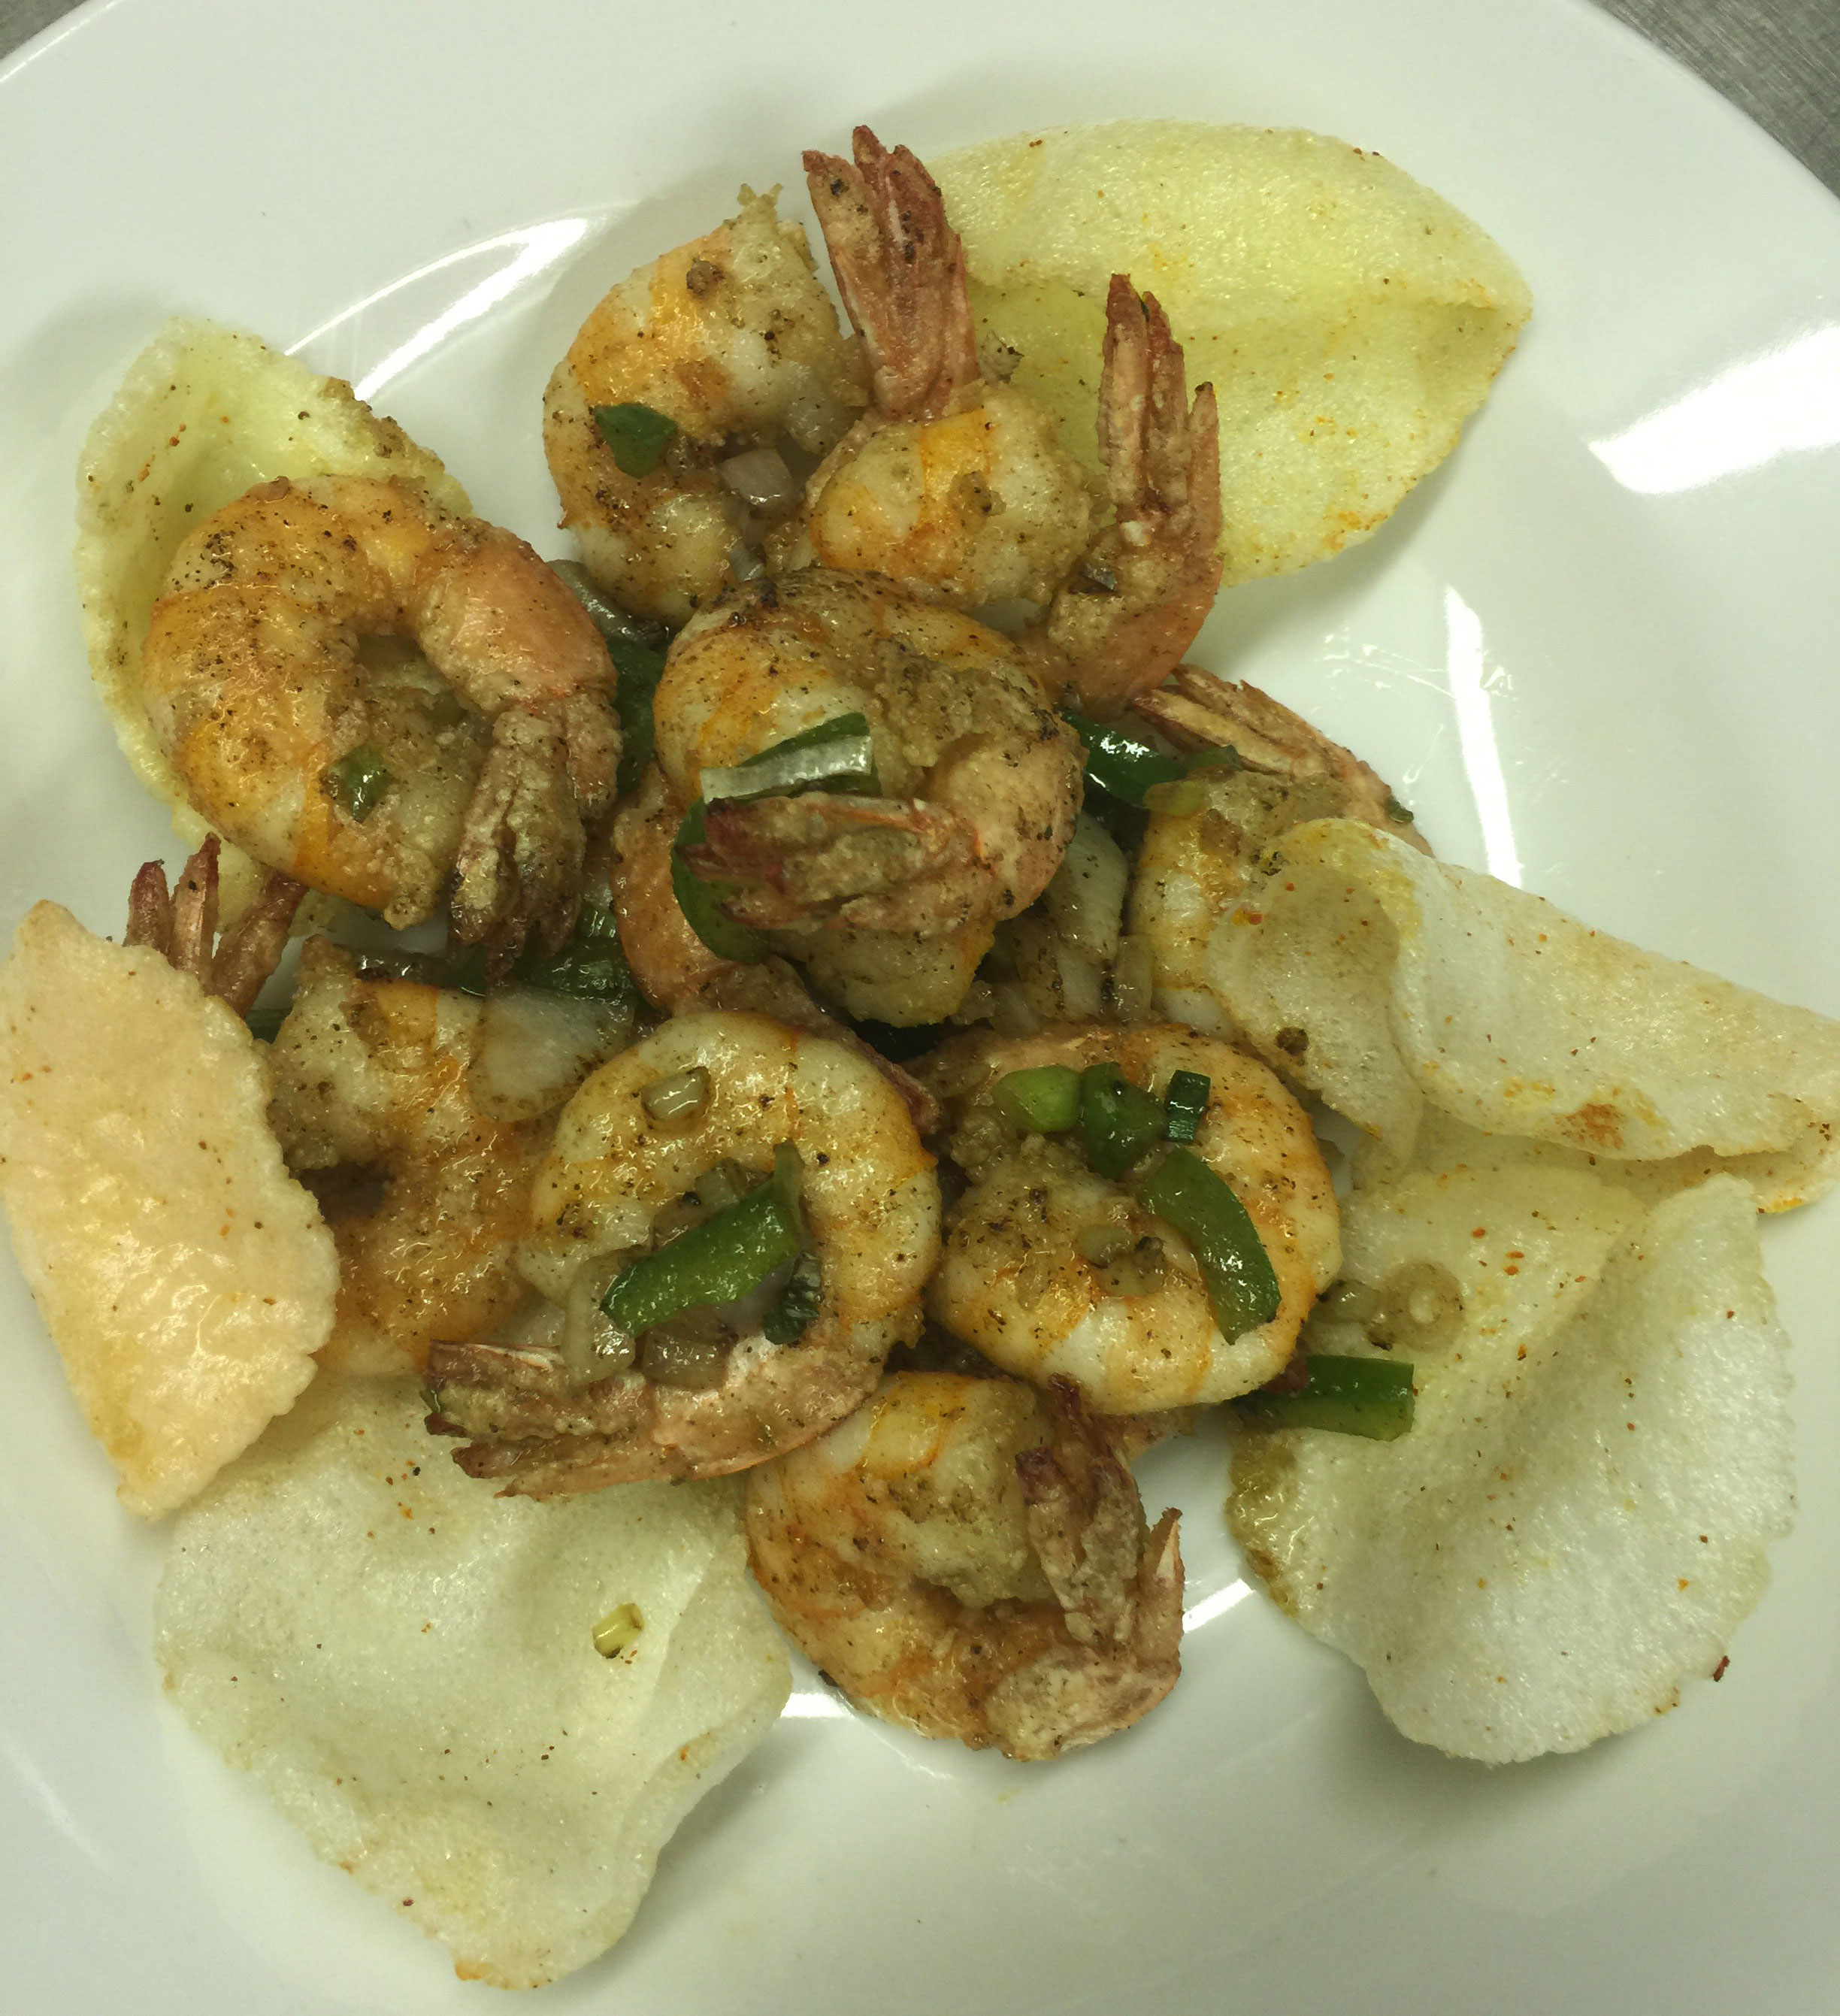 163. Salt & Pepper Shrimp Image